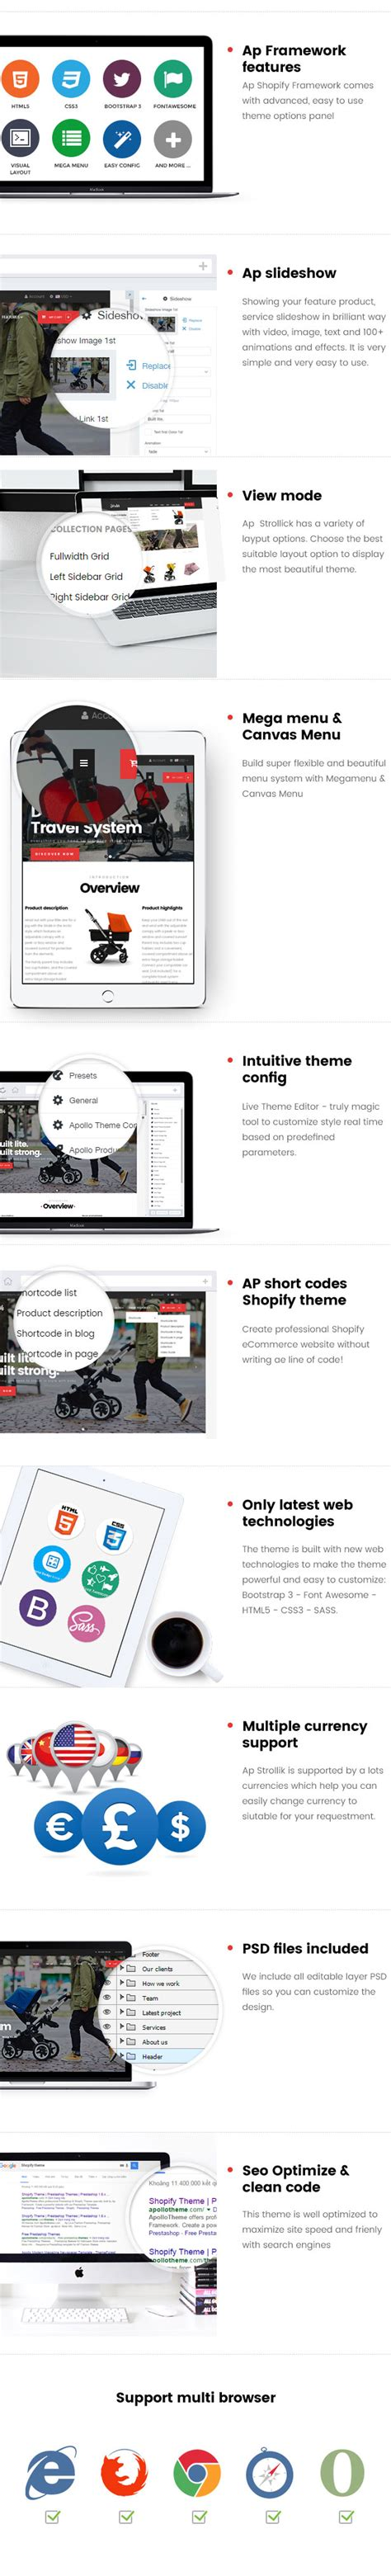 shopify themes for single product ap strollik single product shopify theme ecommerce